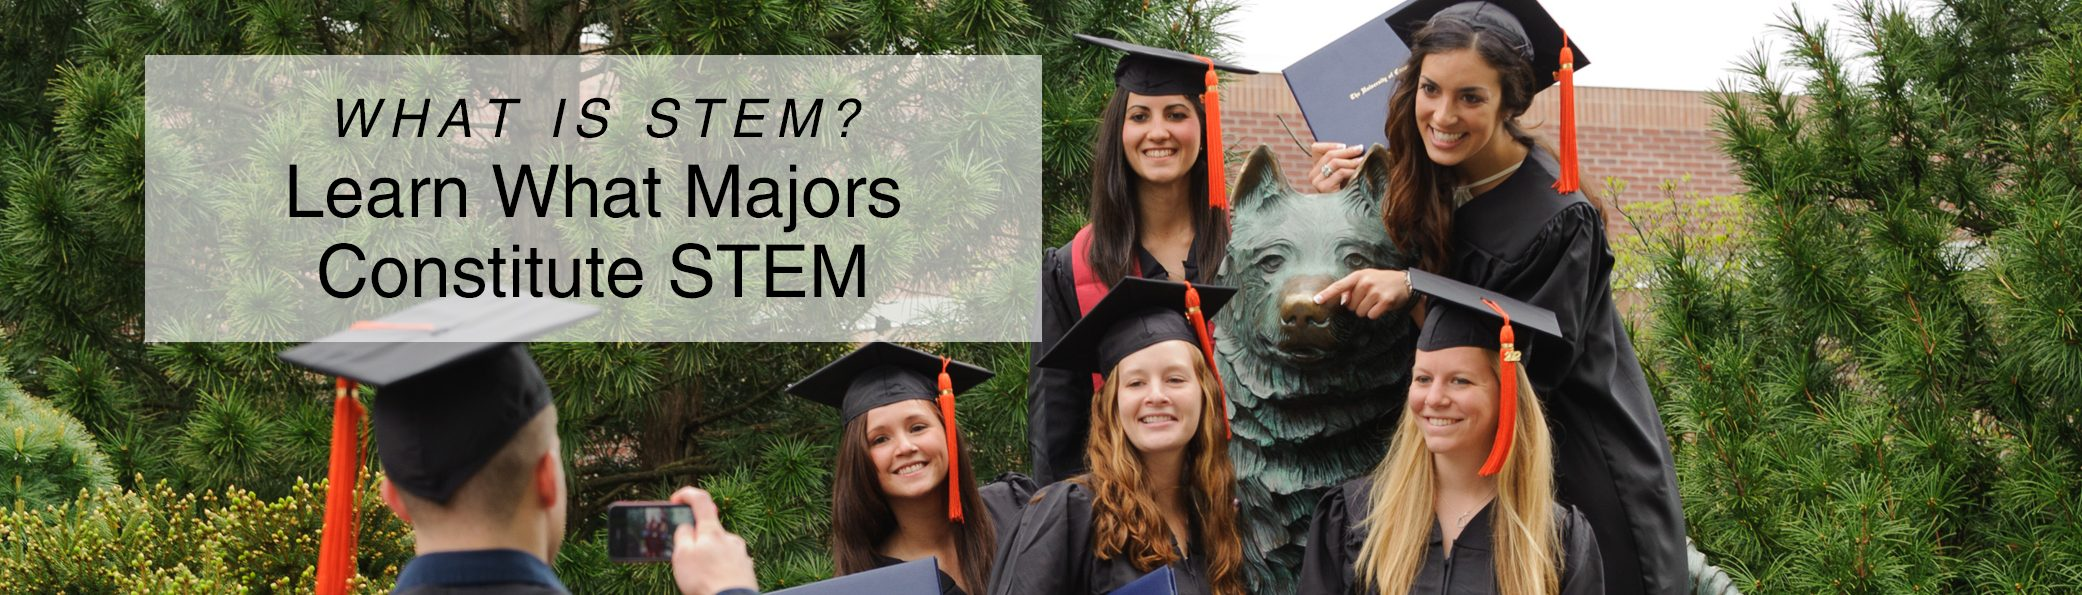 Possible stem majors